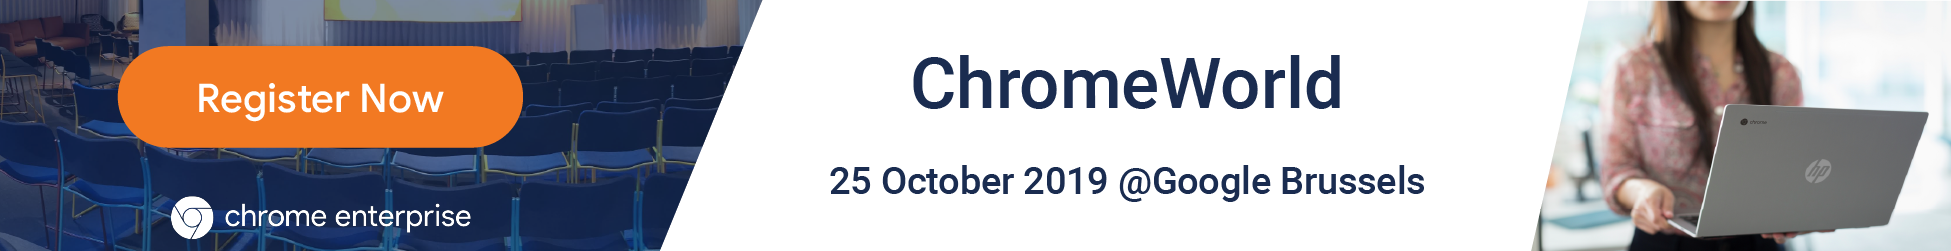 ChromeWorld Brussels 25 October 2019